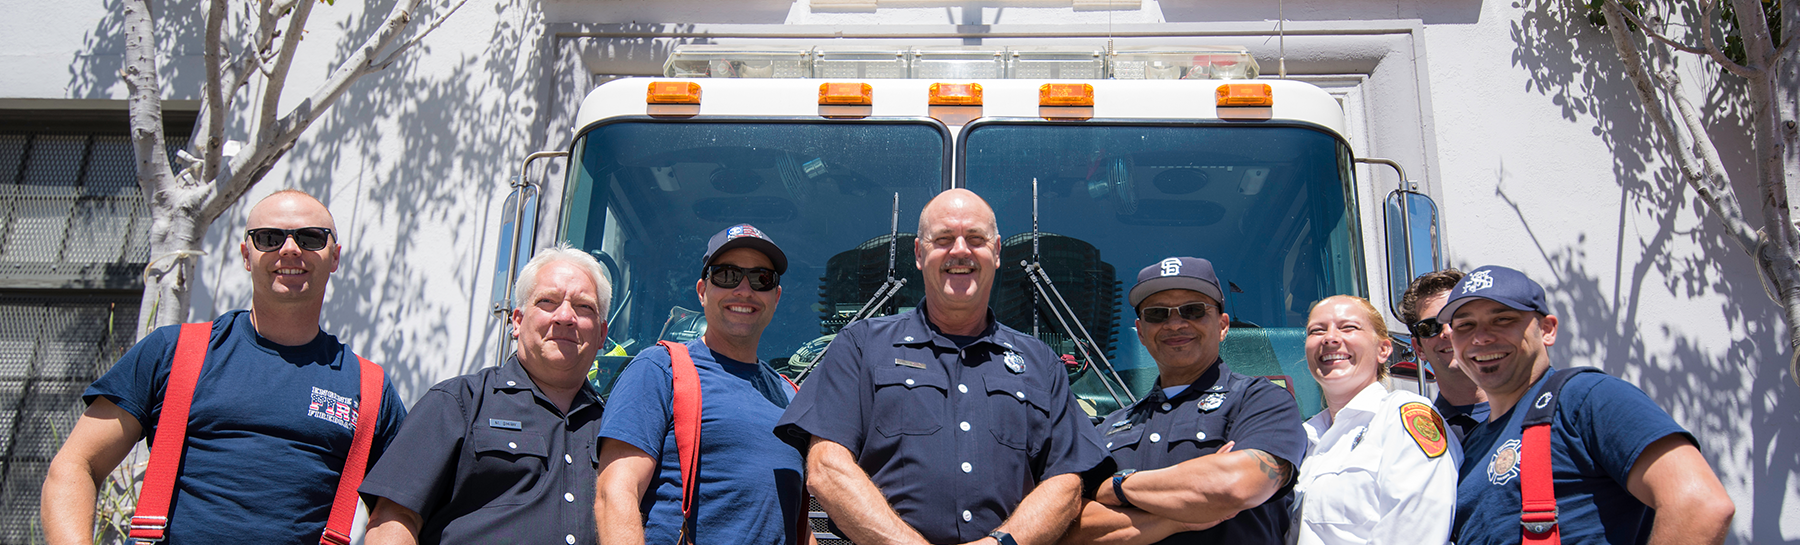 Image of a group of City and County of San Francisco firefighters posing together in front of a fire truck along the Embarcadero in San Francisco.